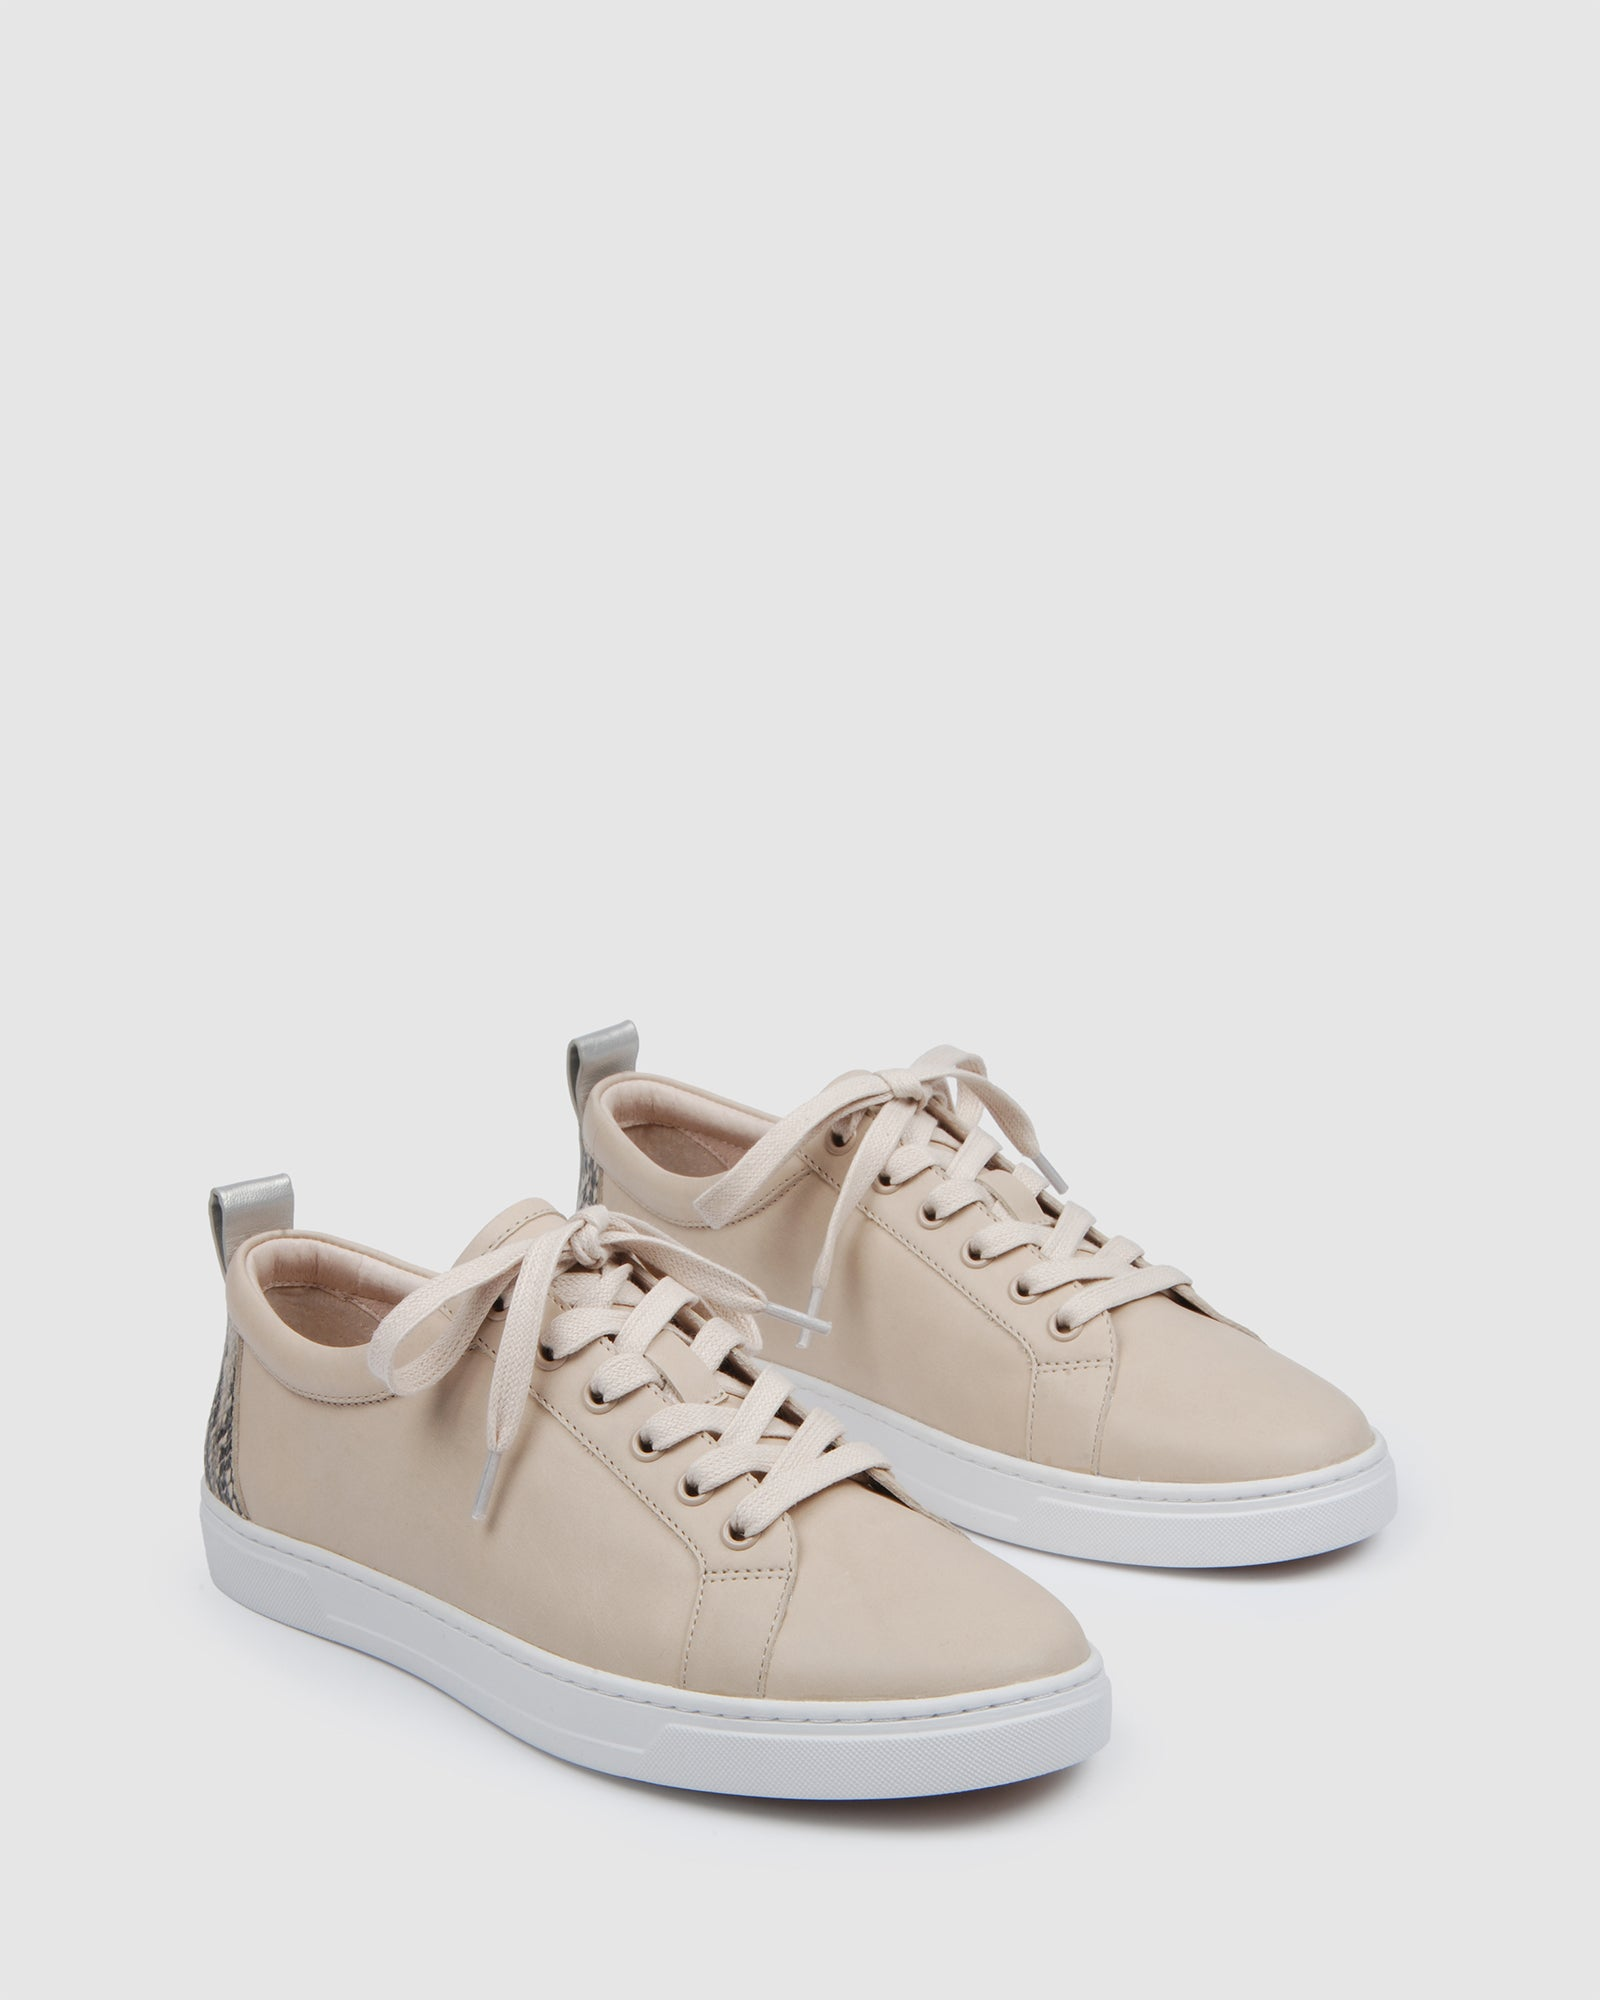 FORESTER SNEAKERS BONE LEATHER